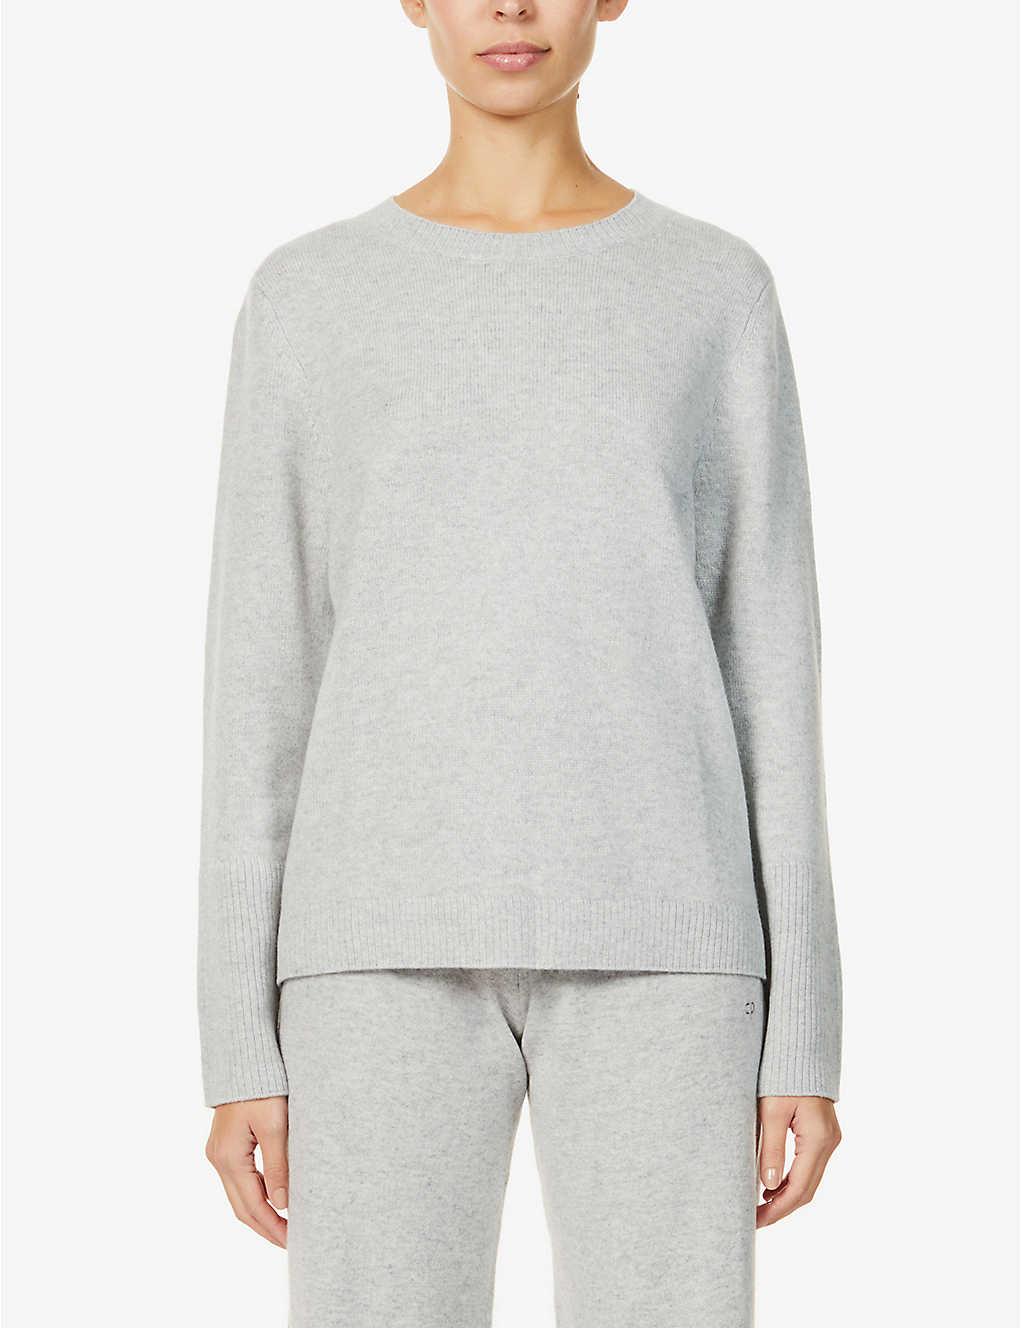 CHINTI AND PARKER: The Boxy round-neck cashmere jumper